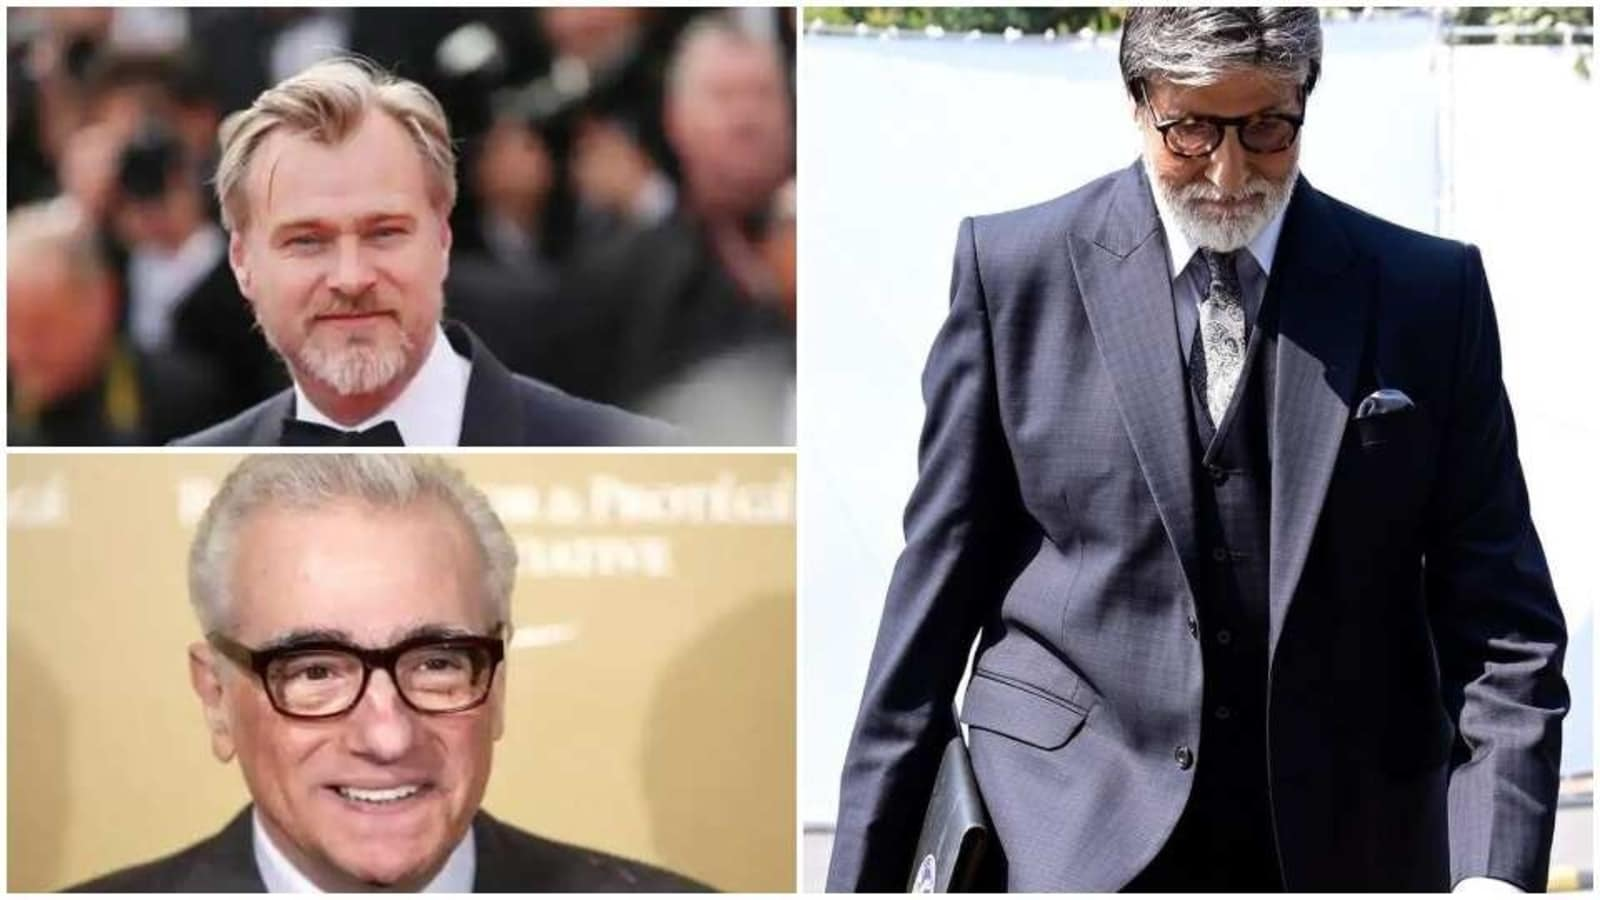 Amitabh Bachchan to receive award from Christopher Nolan, Martin Scorsese: 'Could not have chosen anyone more deserving' - Hindustan Times